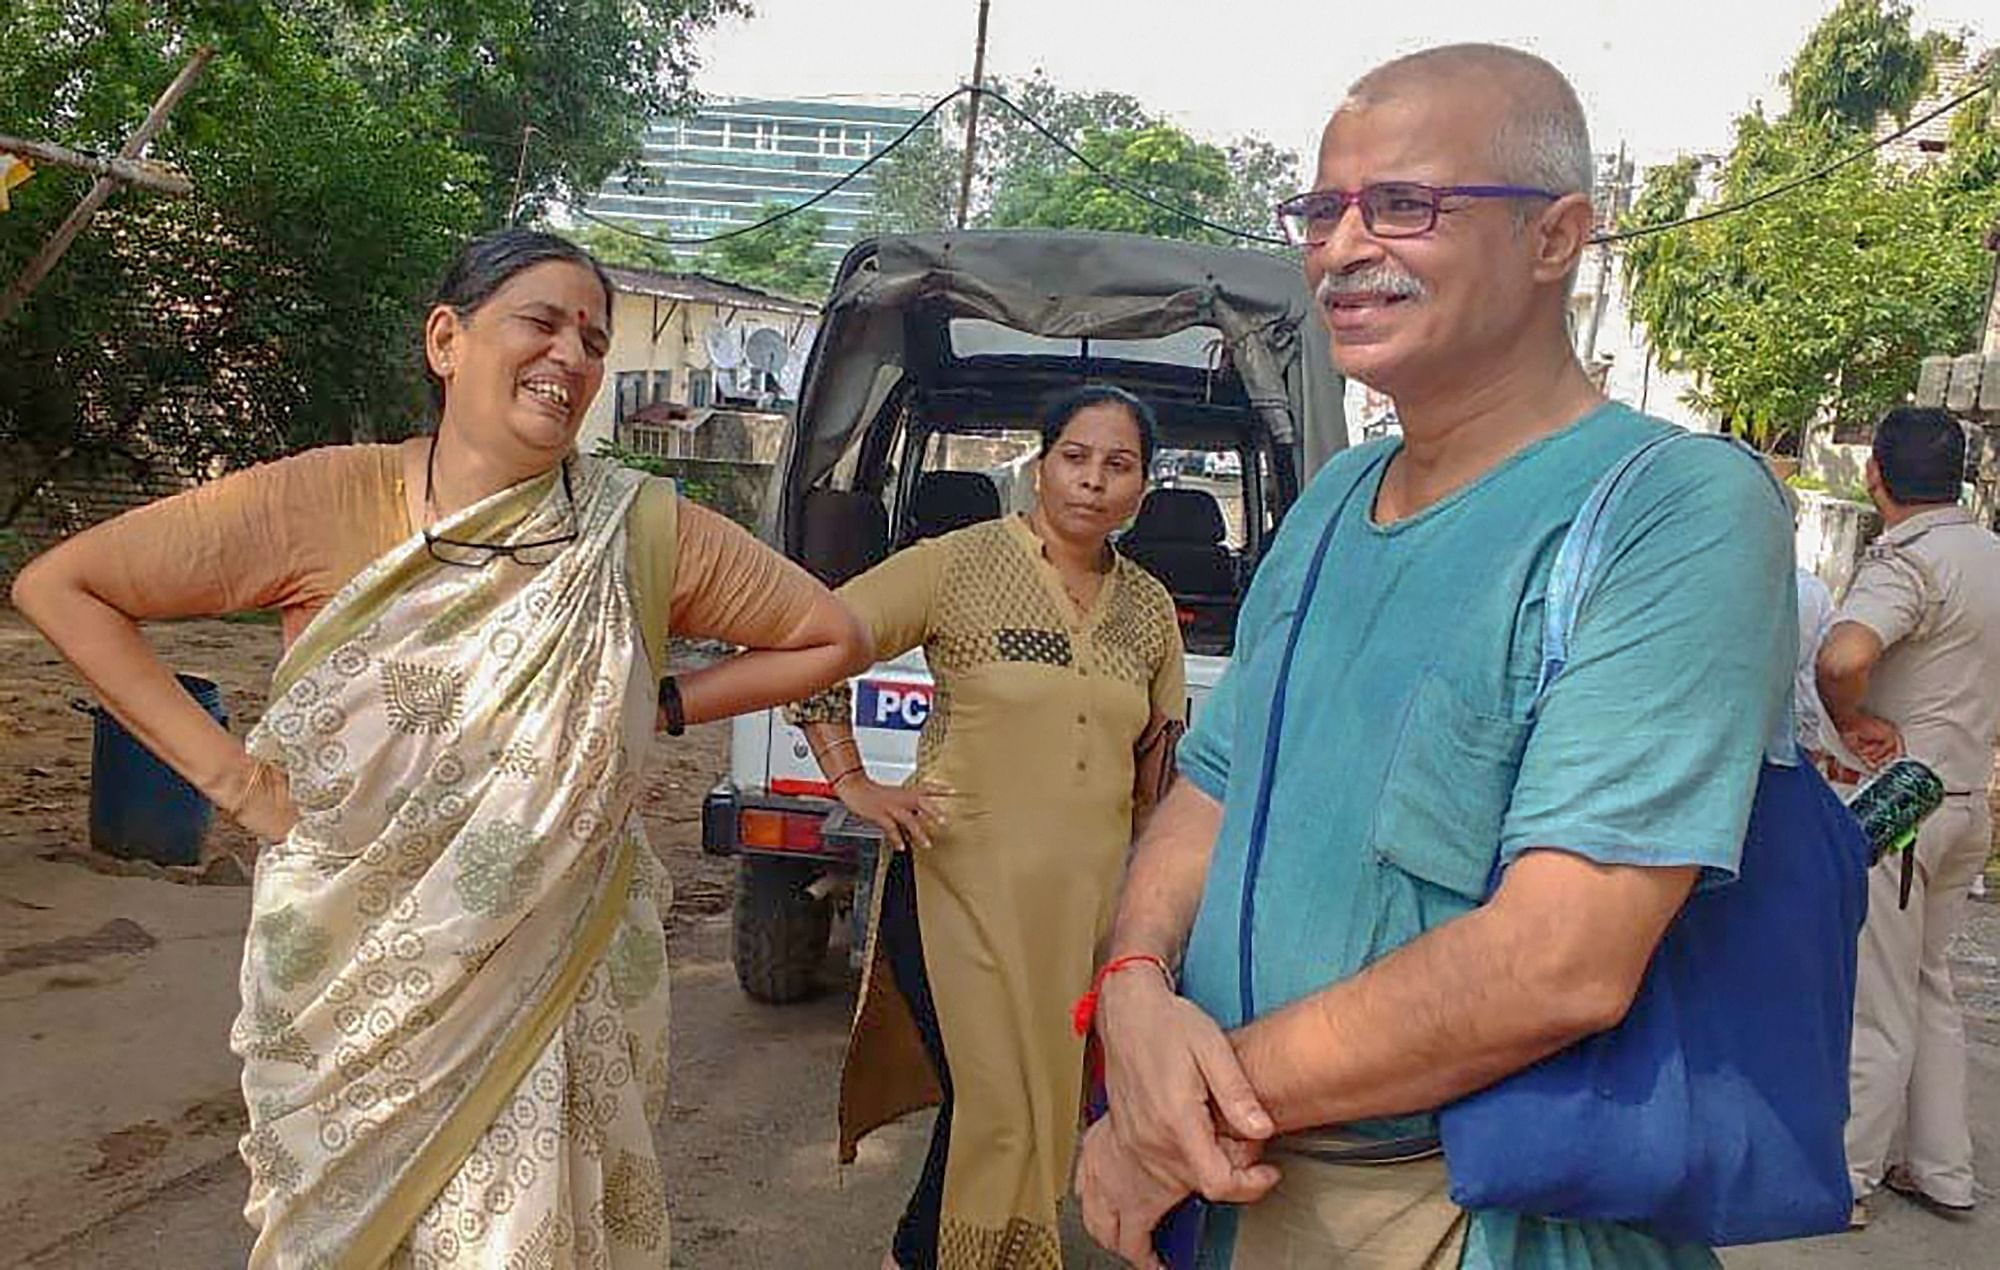 Sudha Bharadwaj (left), as she was arrested by the Pune police, in Faridabad on  Aug 28, 2018. (Photograph: PTI)